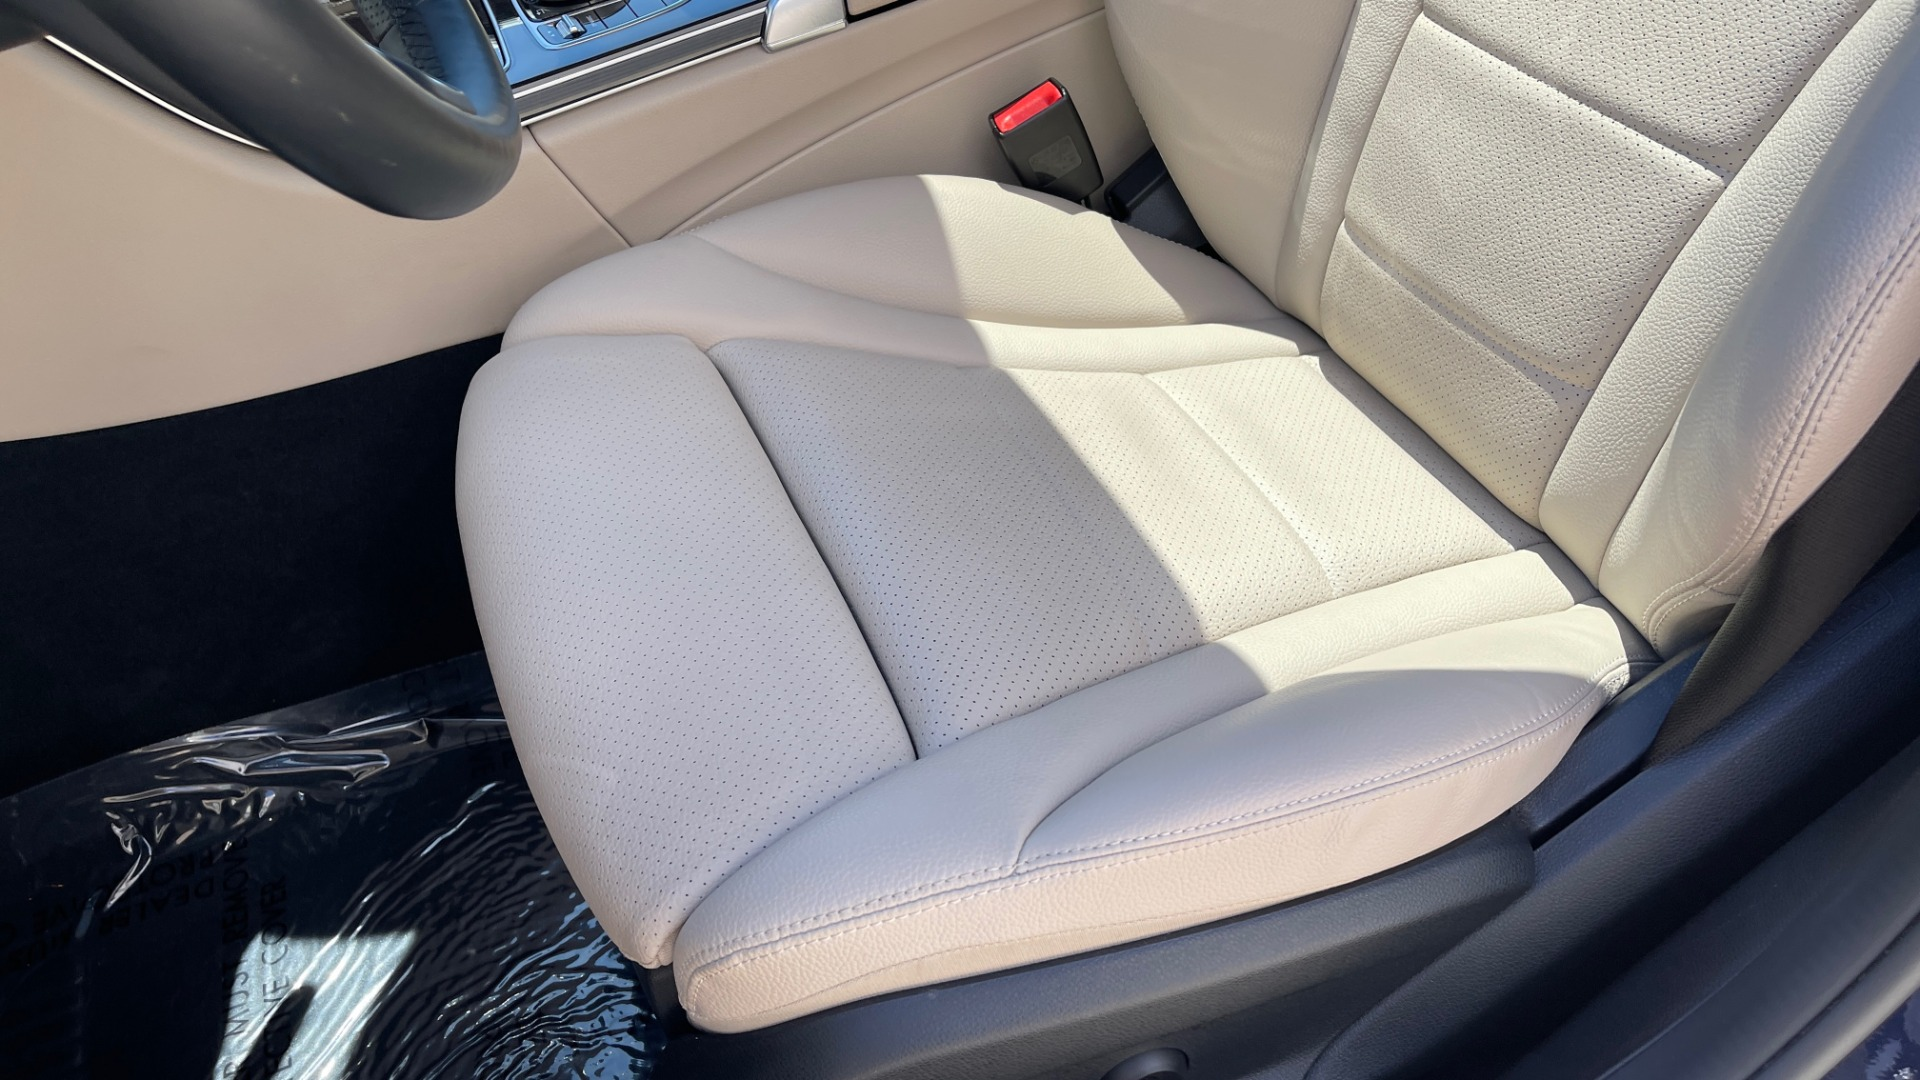 Used 2018 Mercedes-Benz C-CLASS C 300 PREMIUM / KEYLESS-GO / PANO-ROOF / BURMESTER / REARVIEW for sale $29,495 at Formula Imports in Charlotte NC 28227 55